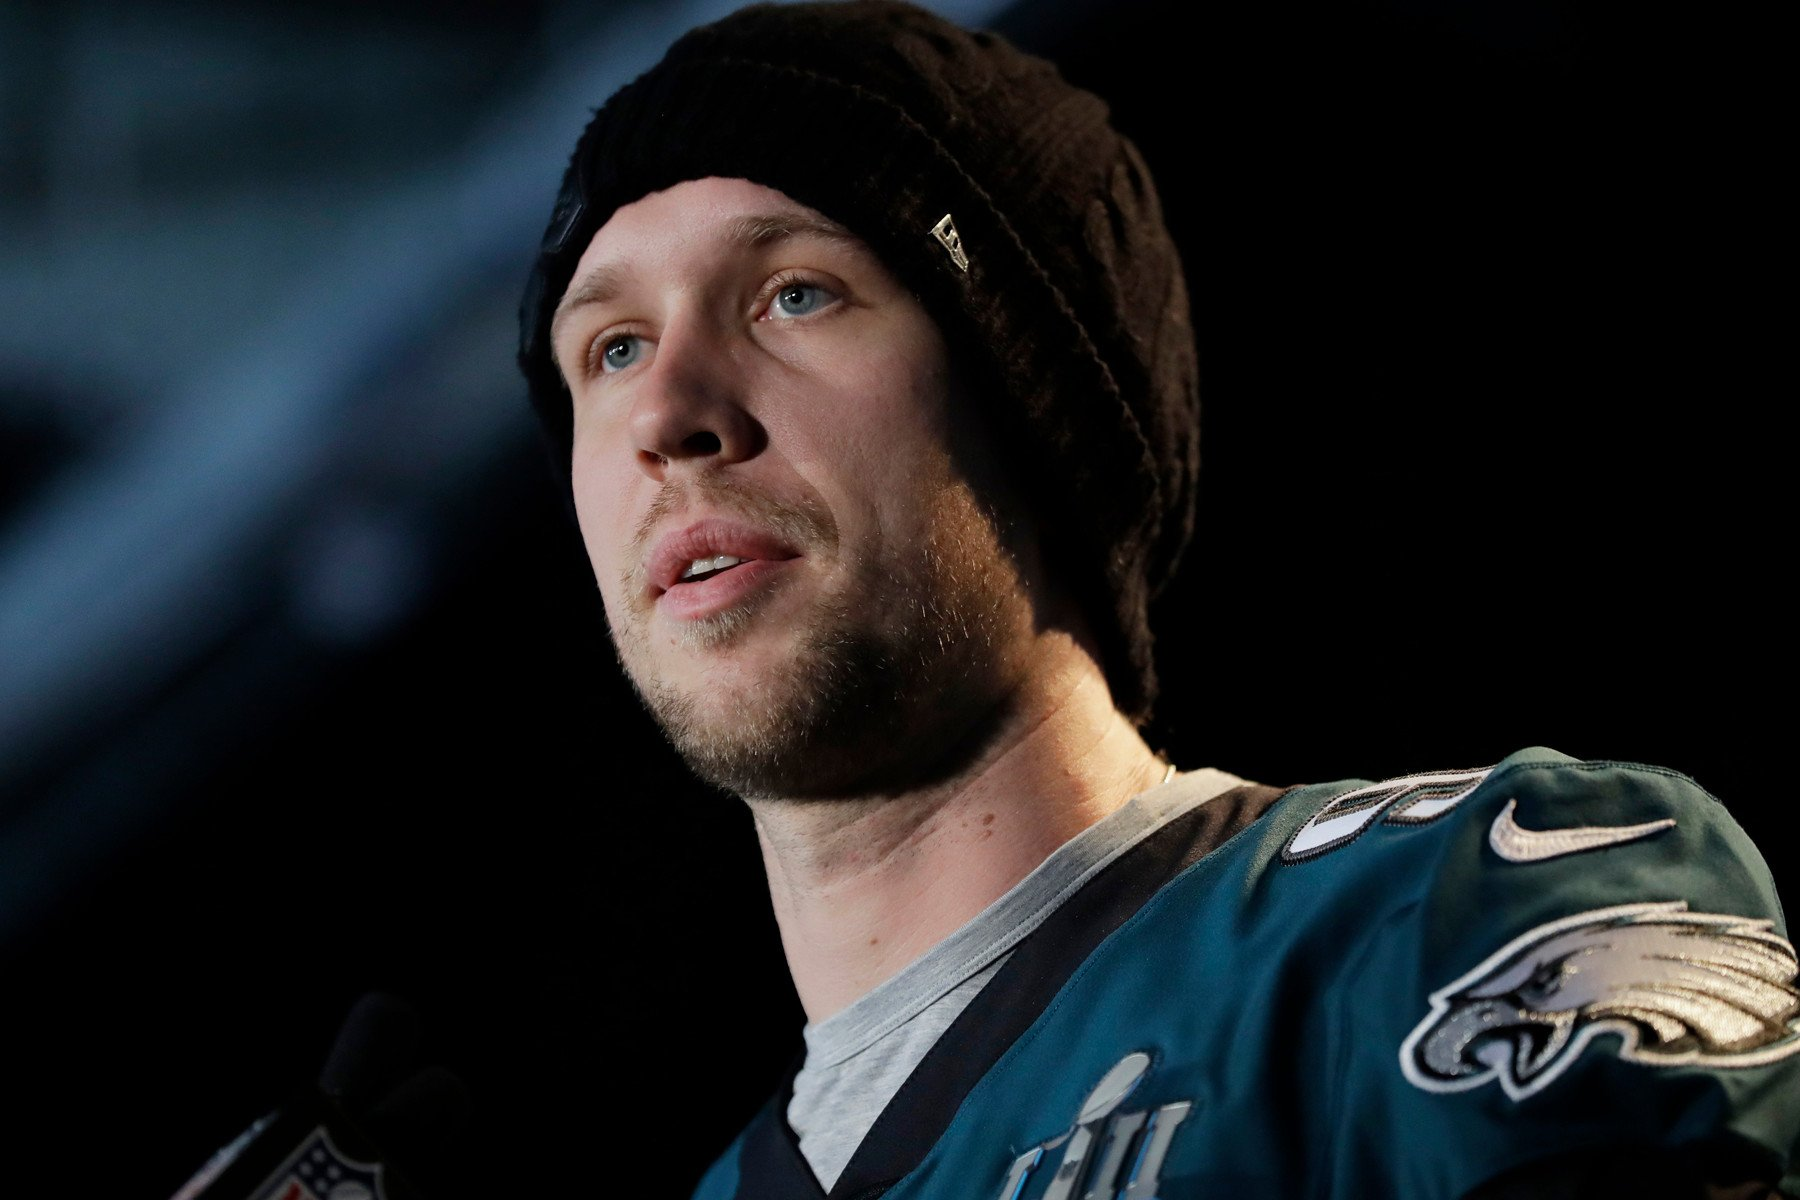 All of Philadelphia looks to Nick Foles to fulfill a city's destiny